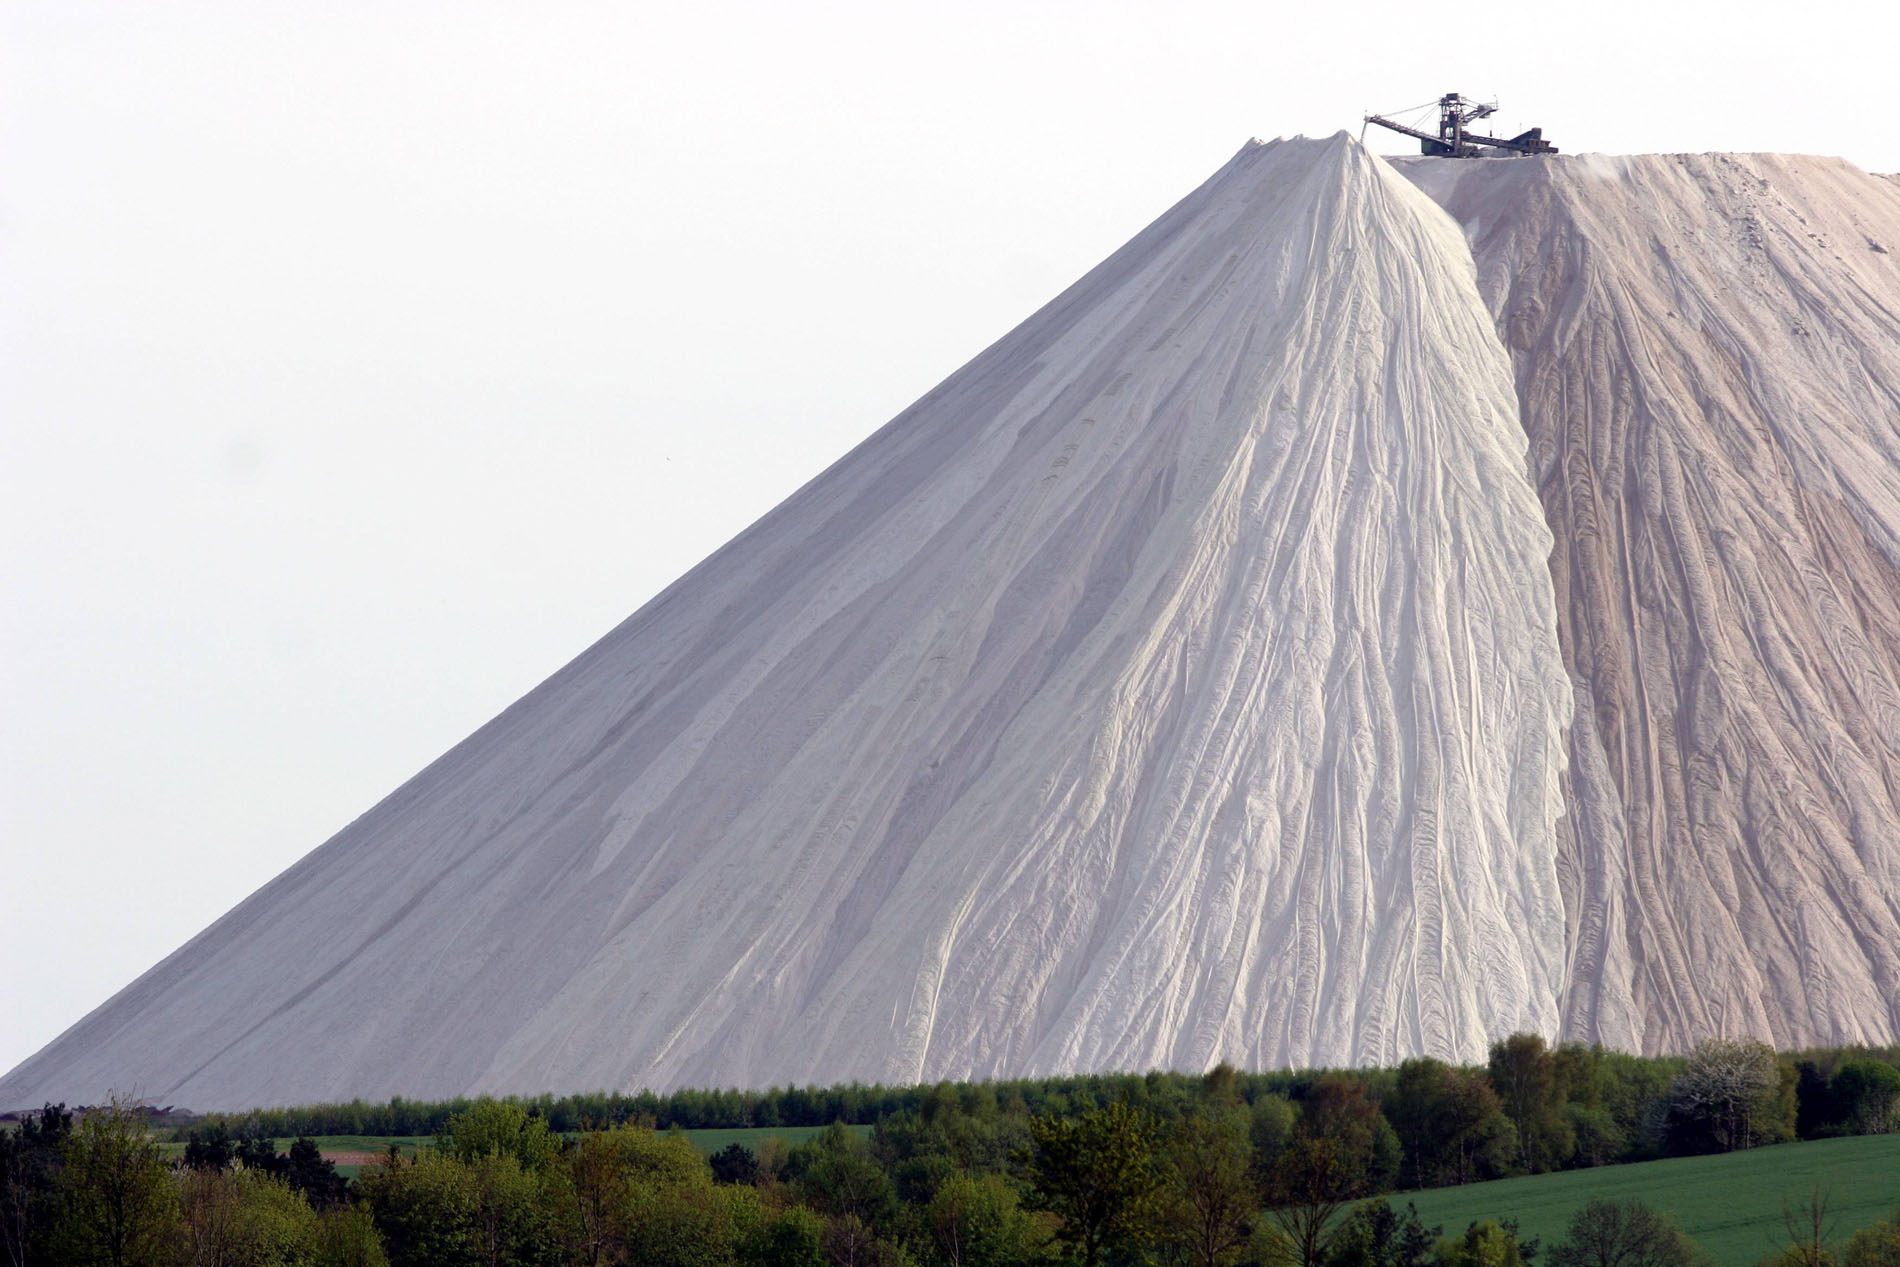 That's one giant pile of salt